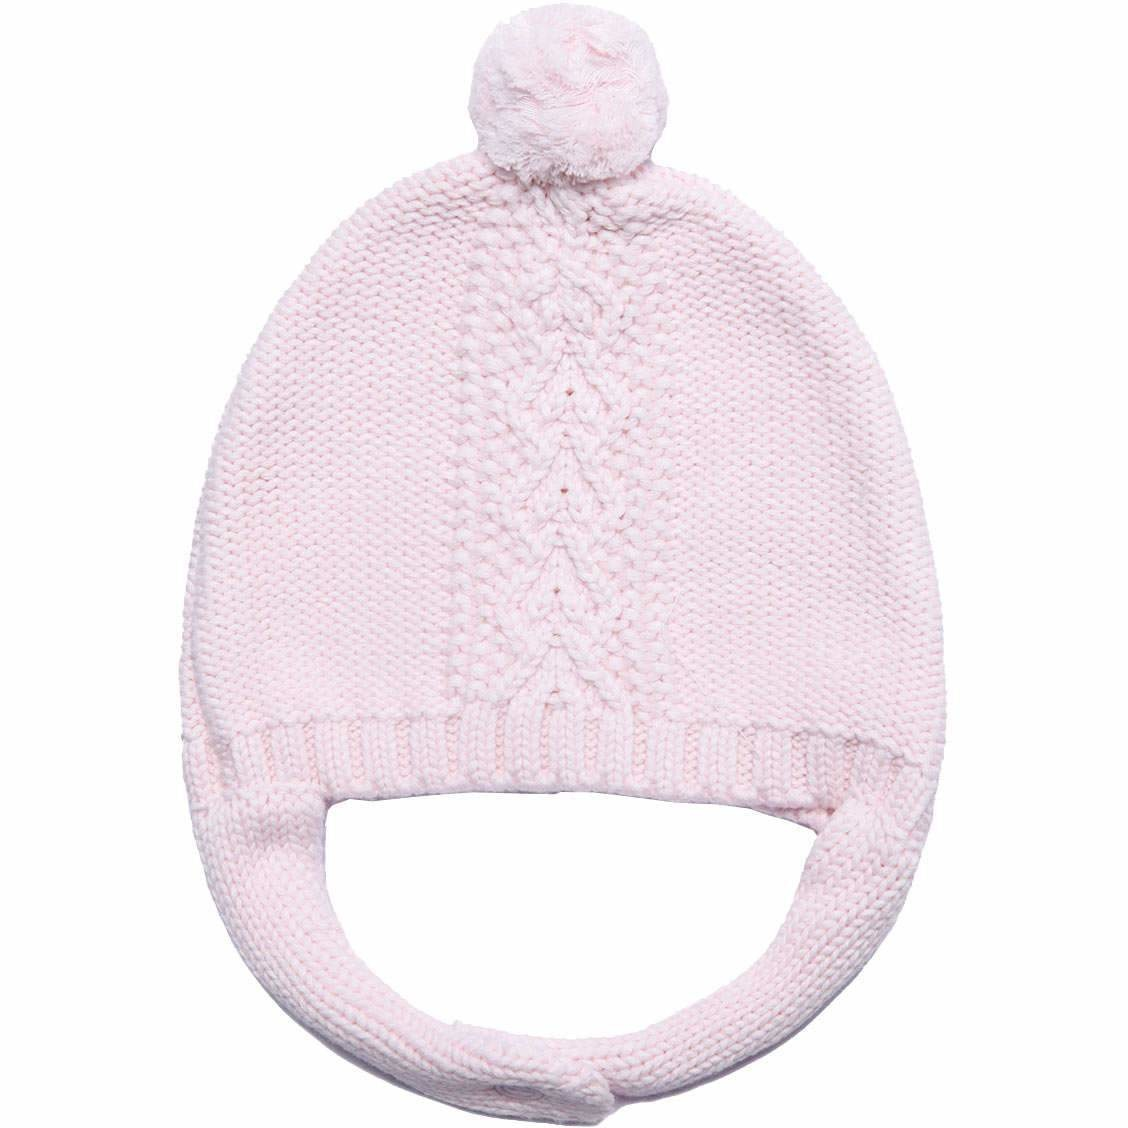 Angel Dear Cable Knit Pilot Hat - Pale Pink